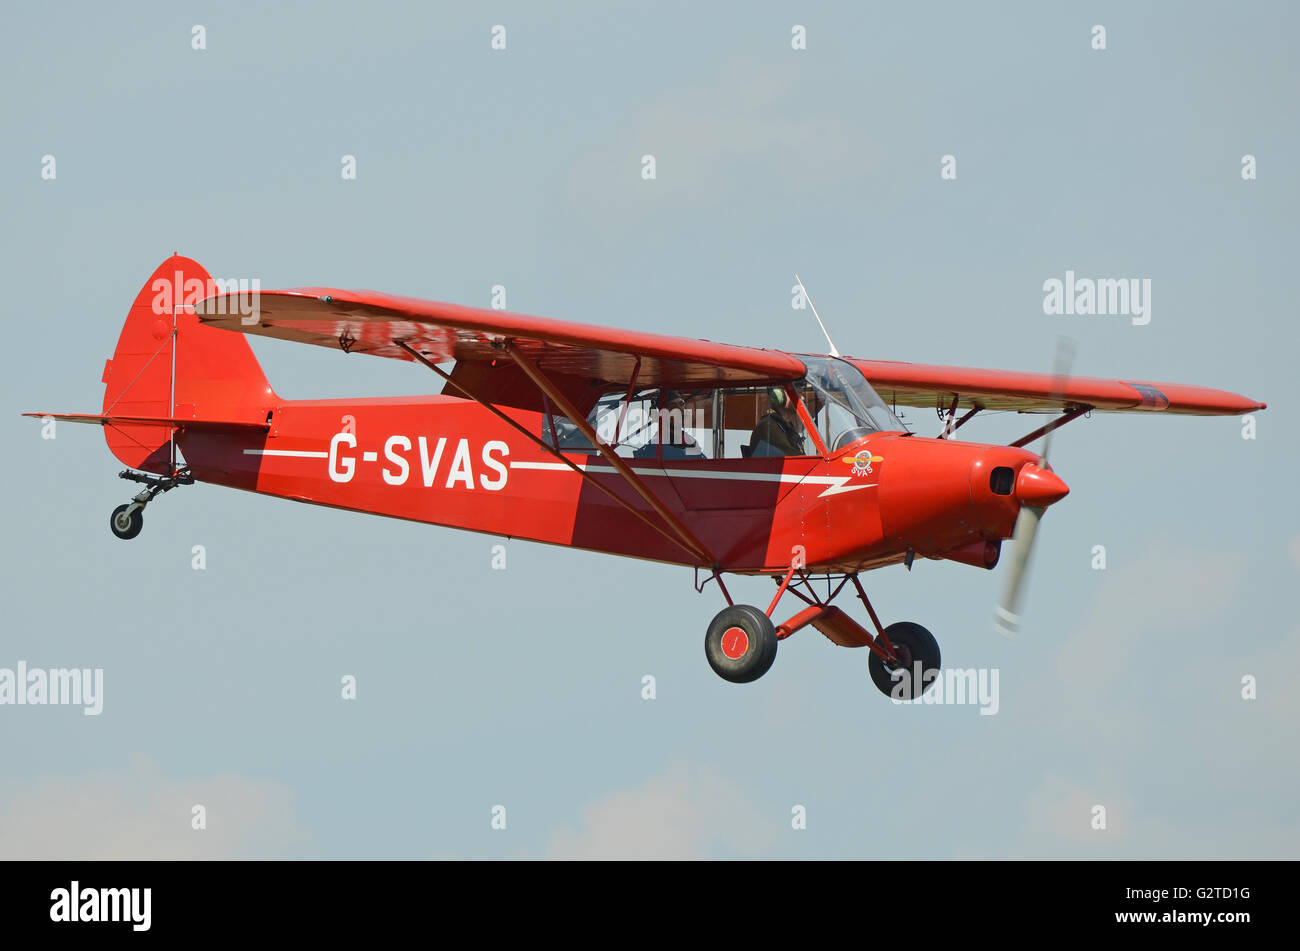 Piper PA-18 Super Cub is a two-seat, single-engine monoplane. Introduced in 1949 by Piper Aircraft, this is a 1961 Stock Photo